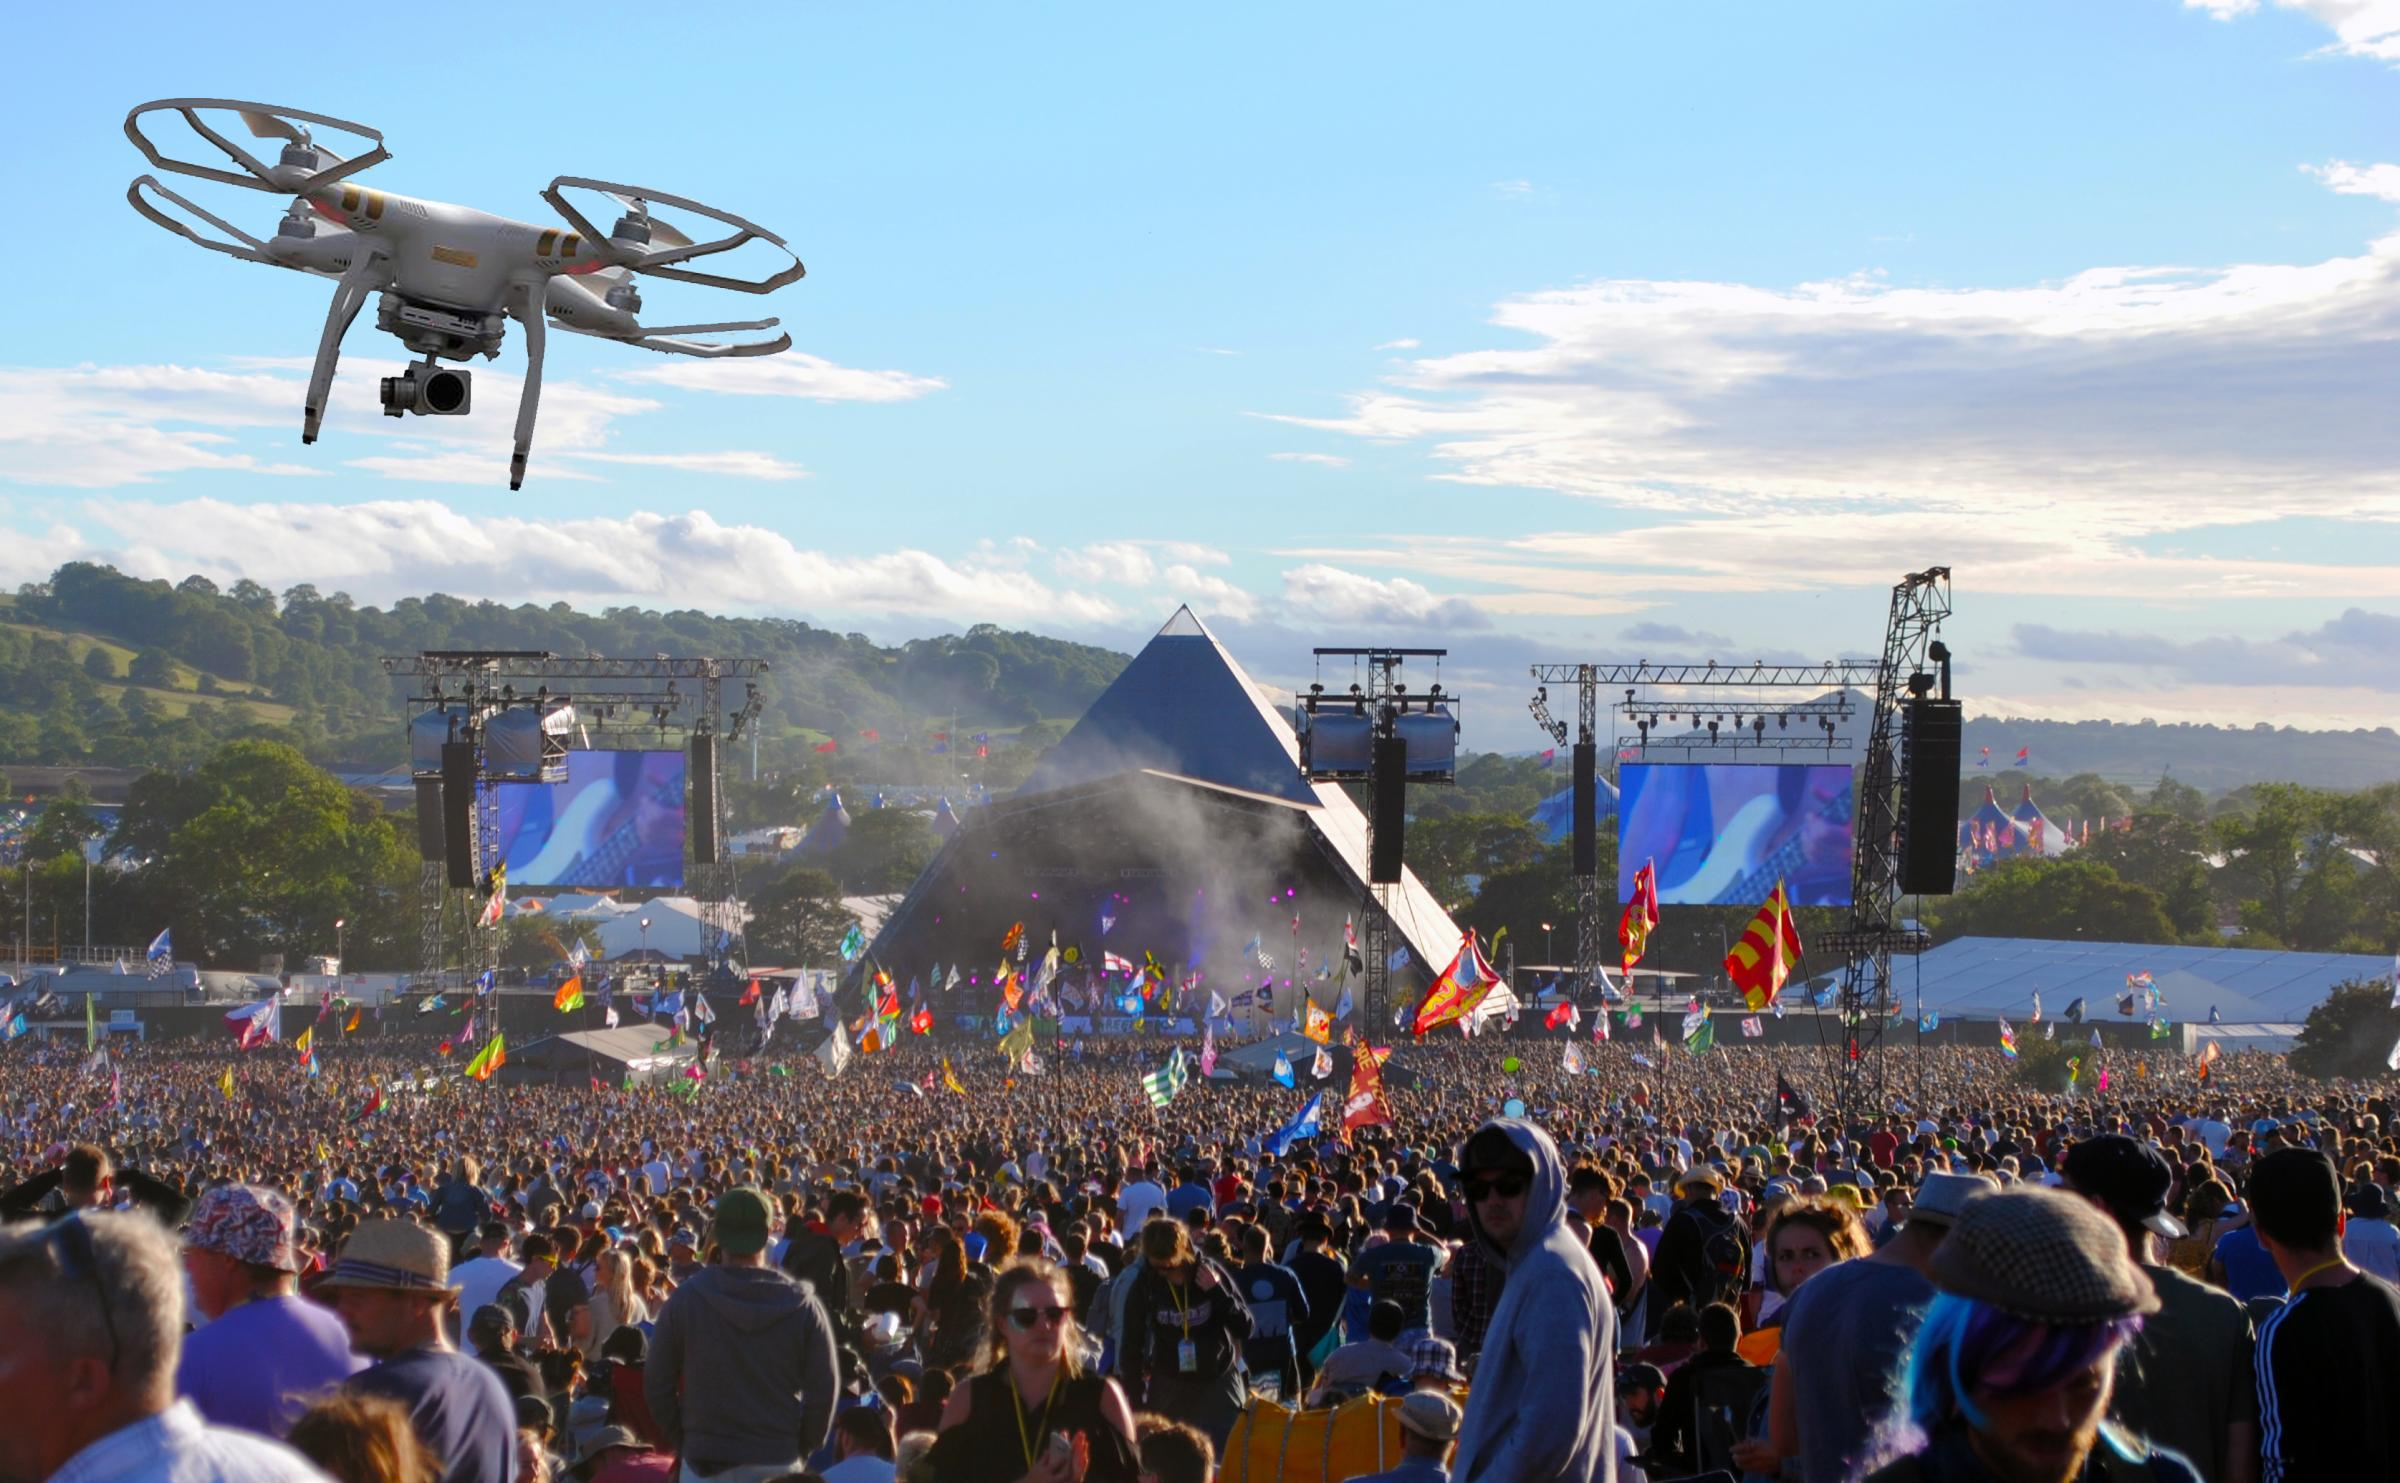 Thinking of flying a drone over the Glastonbury Festival? Don't bother...